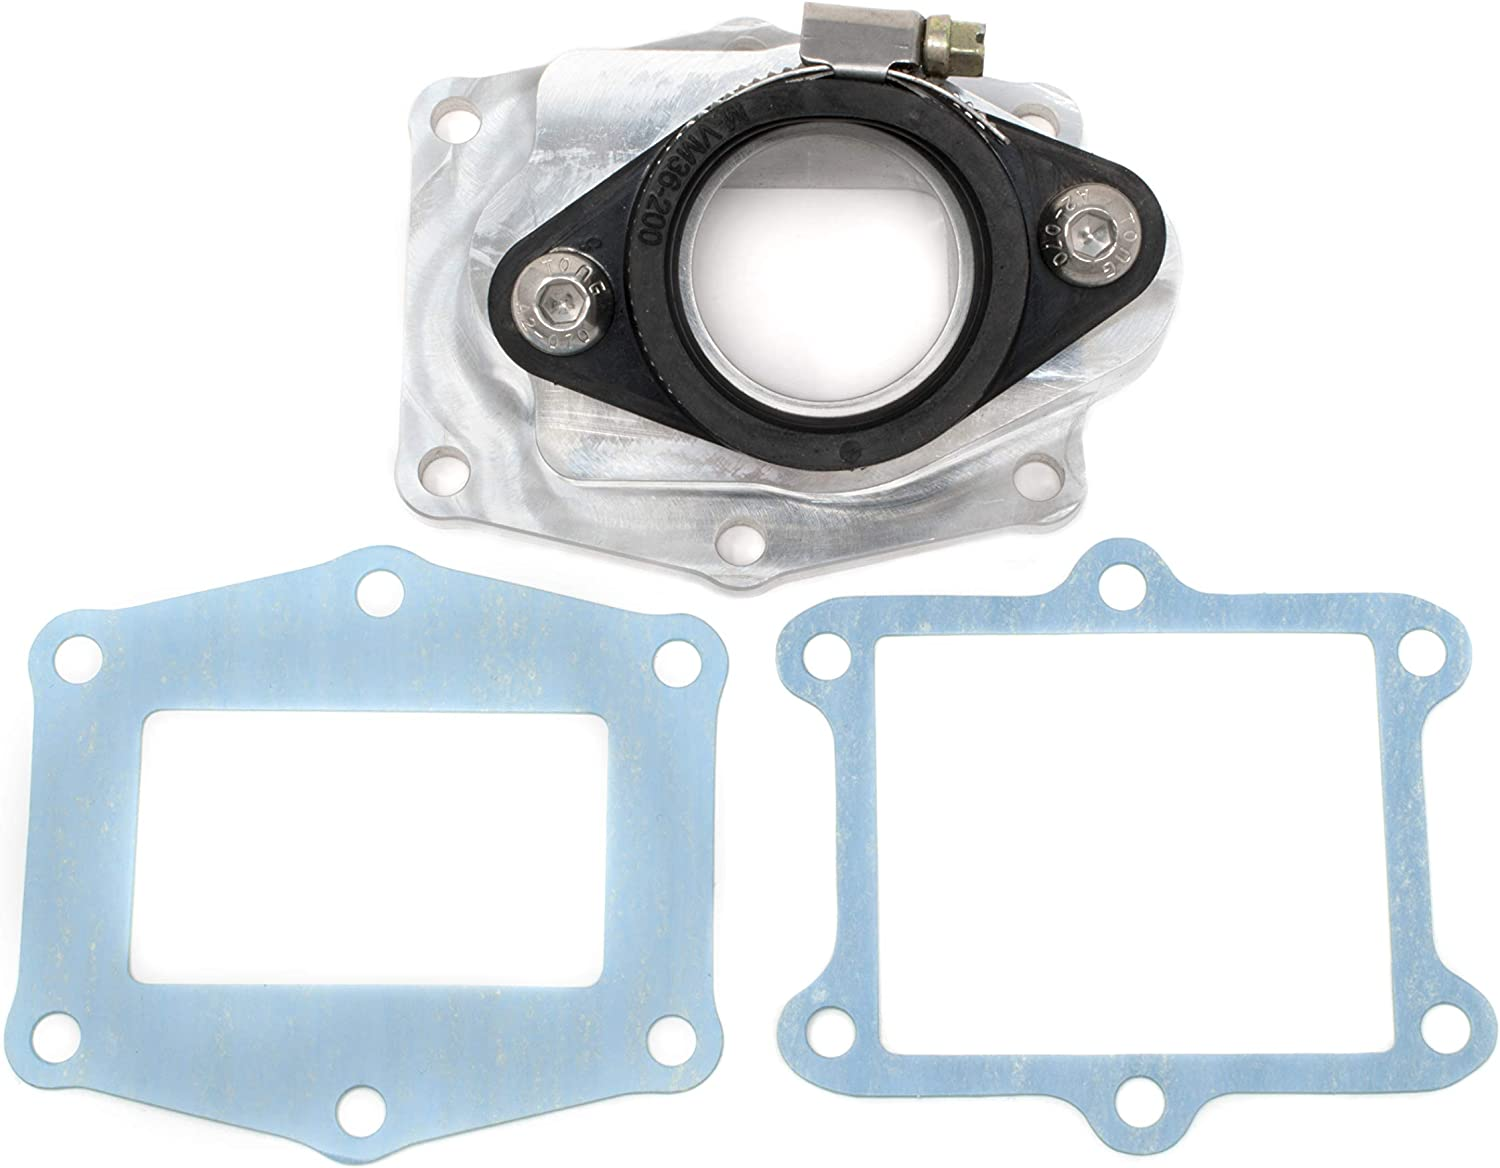 DP 1 year warranty 0019-002 Intake Manifold Assembly Boot With 36-39mm Over-siz Same day shipping